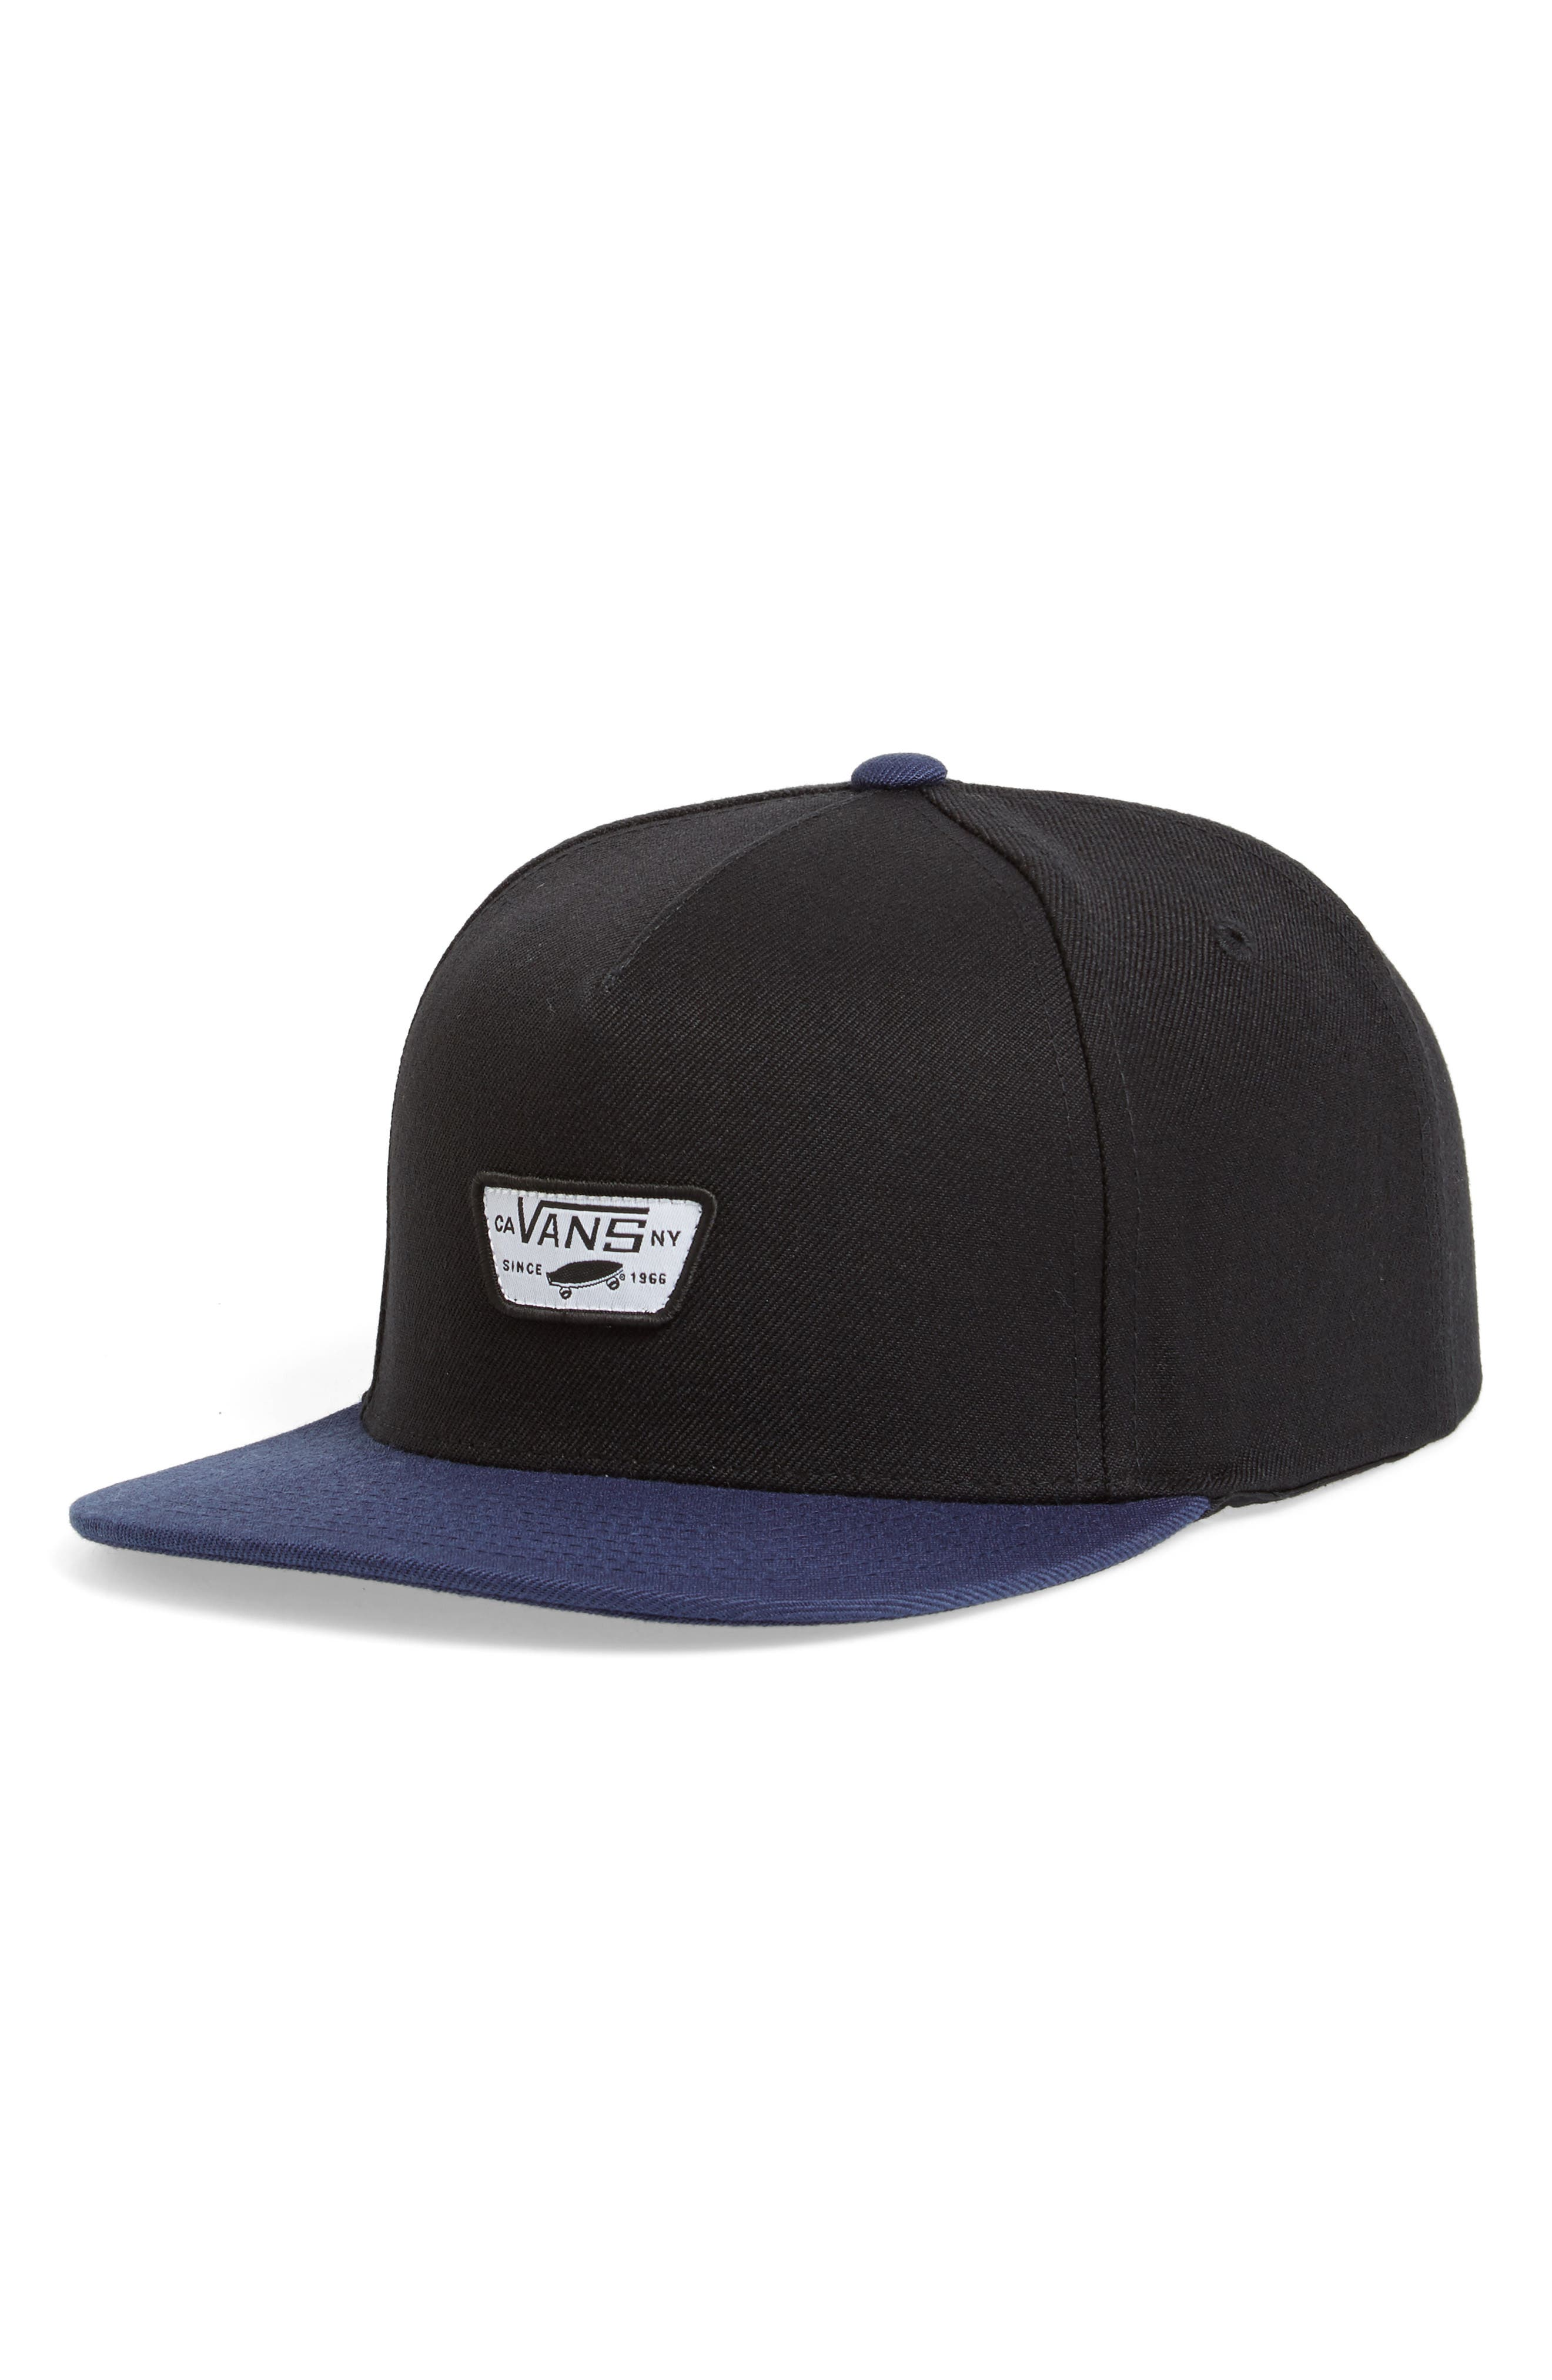 Mini Patch II Snapback Cap,                         Main,                         color, Black/ Dress Blues